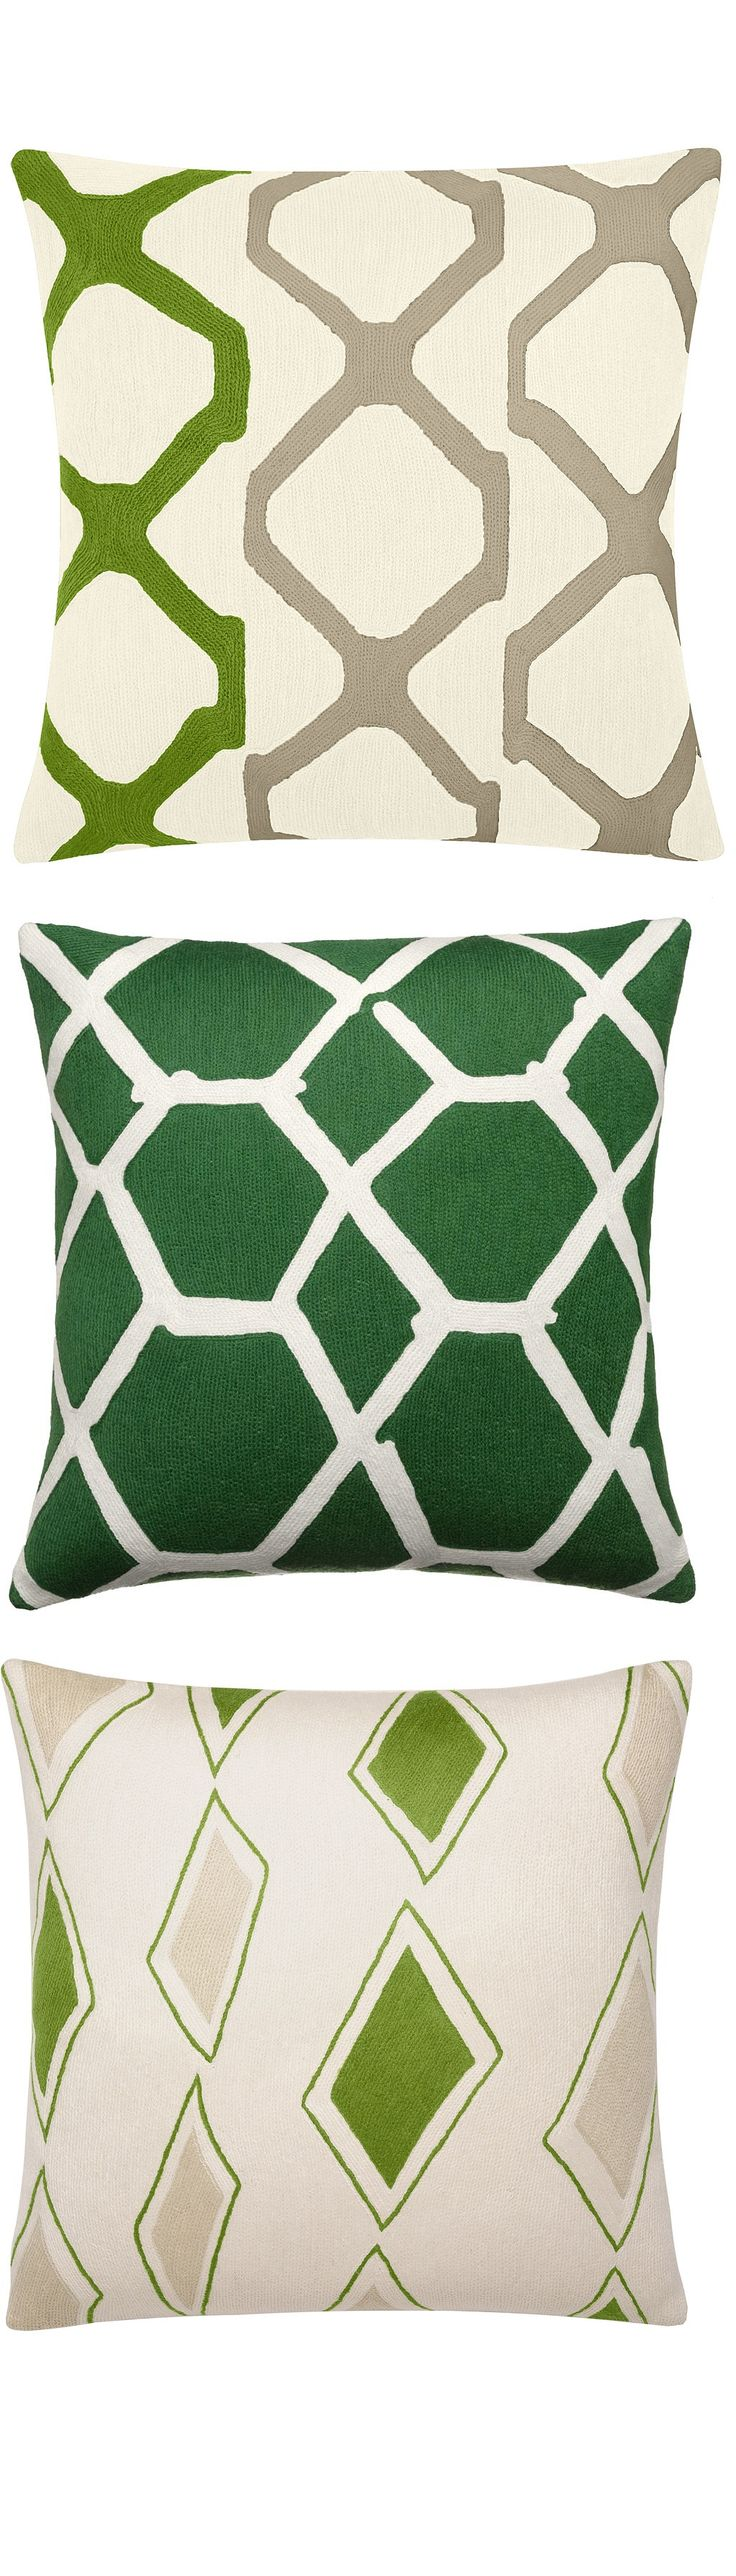 """green pillows"" ""green throw pillows"" ""green modern pillows"" By InStyle-Decor.com Hollywood, green couch pillow, green couch pillows, green pillow cases, green pillows shams, green pillow covers, green decorative pillows, decorative green pillows, modern green pillow, modern green pillows, contemporary green pillow, contemporary green pillows, decorative pillows, decorative pillows for sofa, decorative pillows for bed, throw pillows, throw pillows for sofa, pillow ideas, from $200"